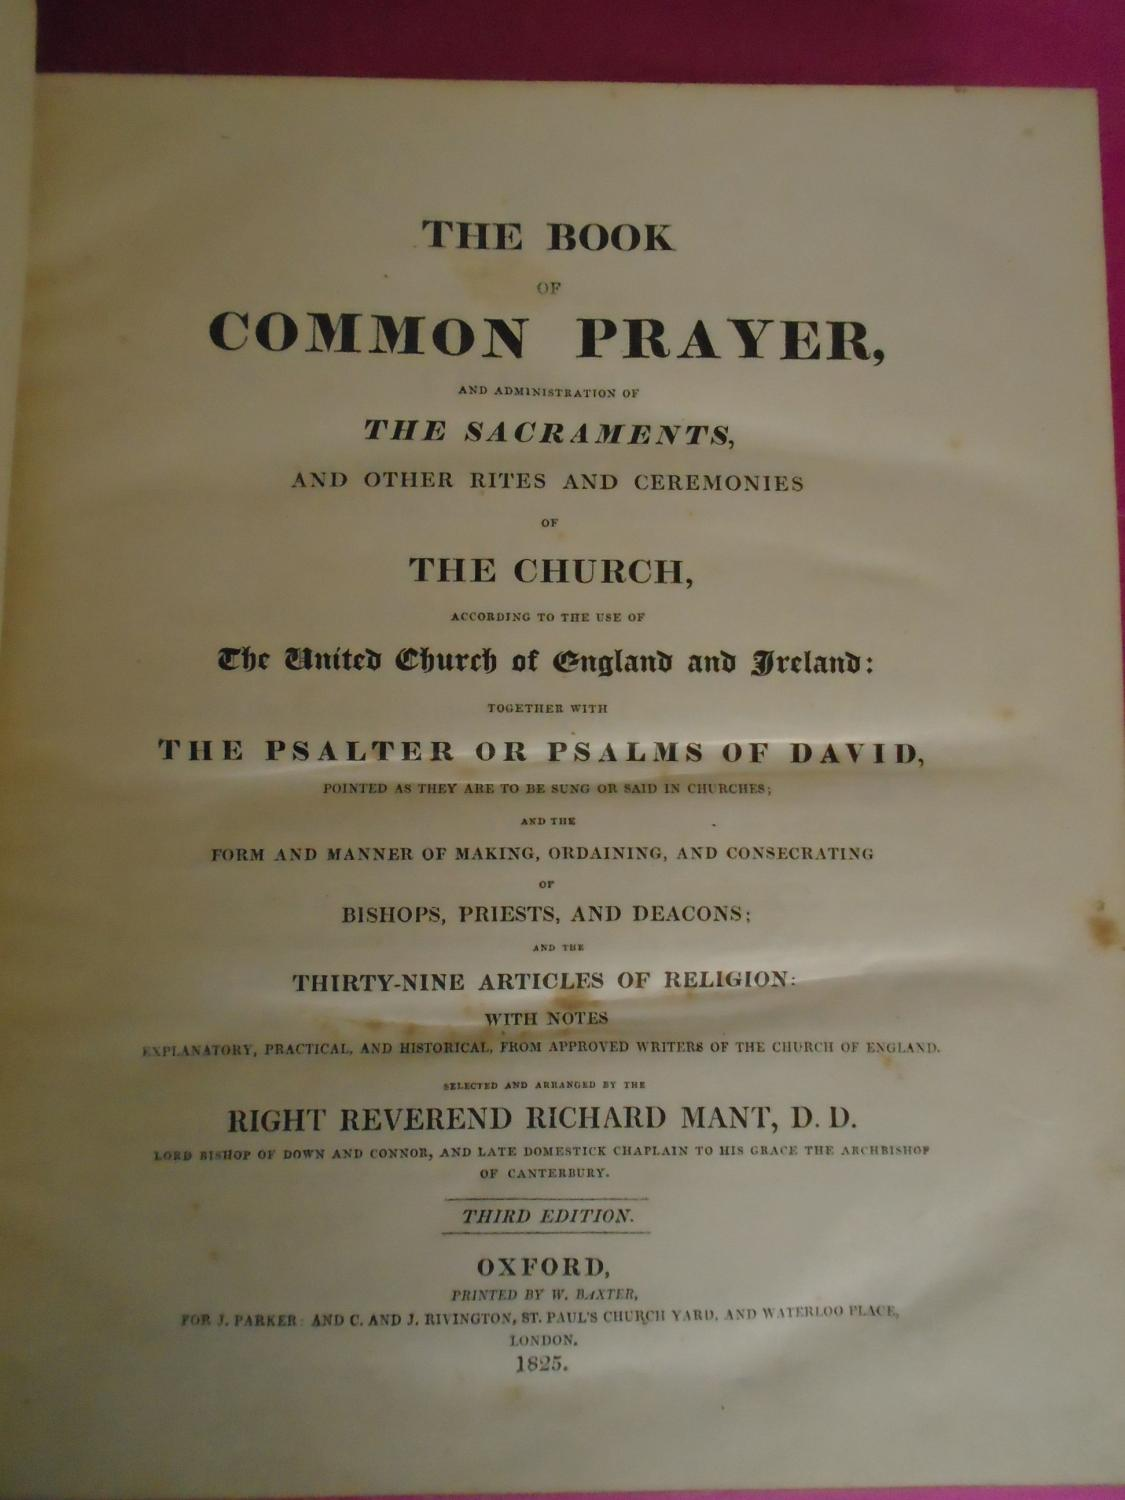 The Book of Common Prayer and Administration of the Sacraments, First Edition